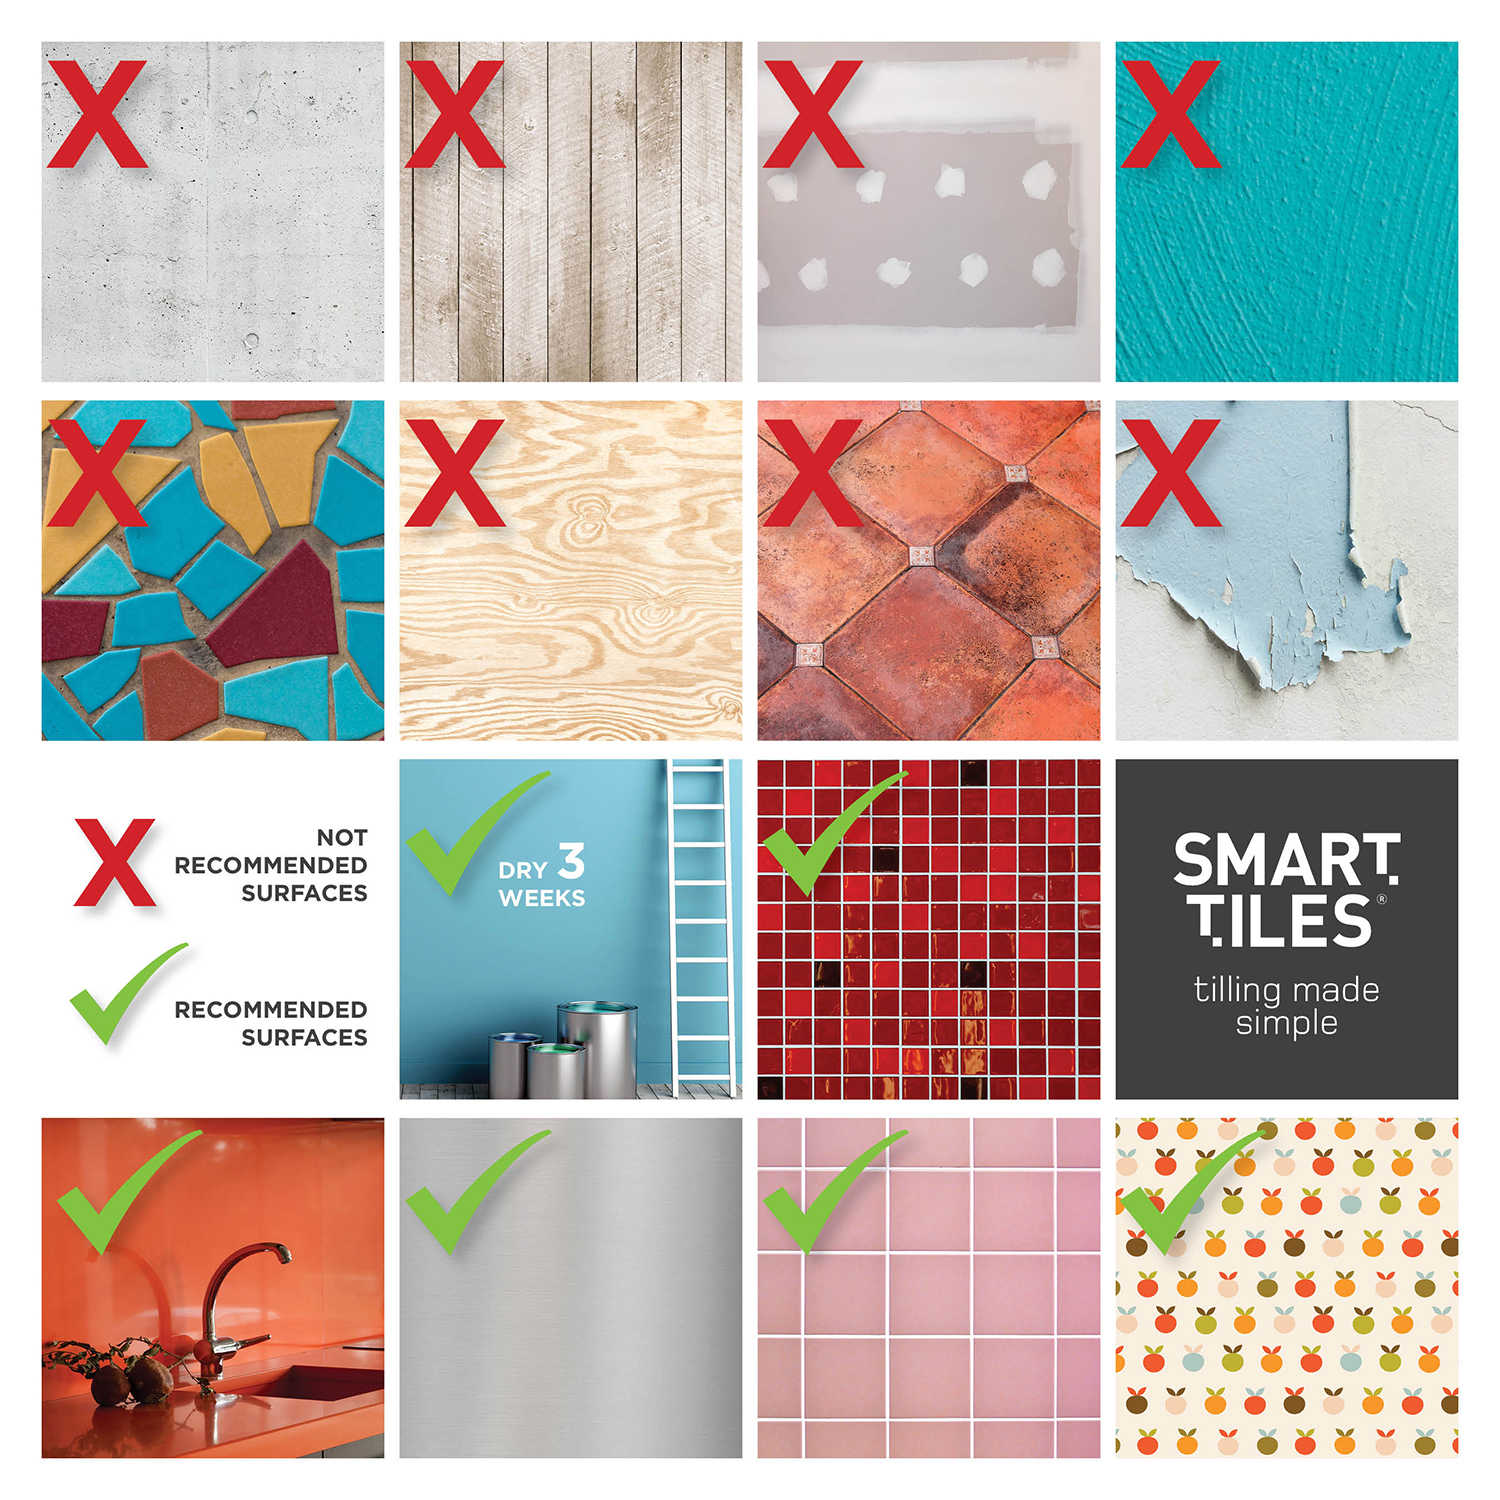 Smart Tiles 10.06 in x 10 in Peel and Stick Self-Adhesive Mosaic Backsplash Wall Tile - Bellagio Costa (each)